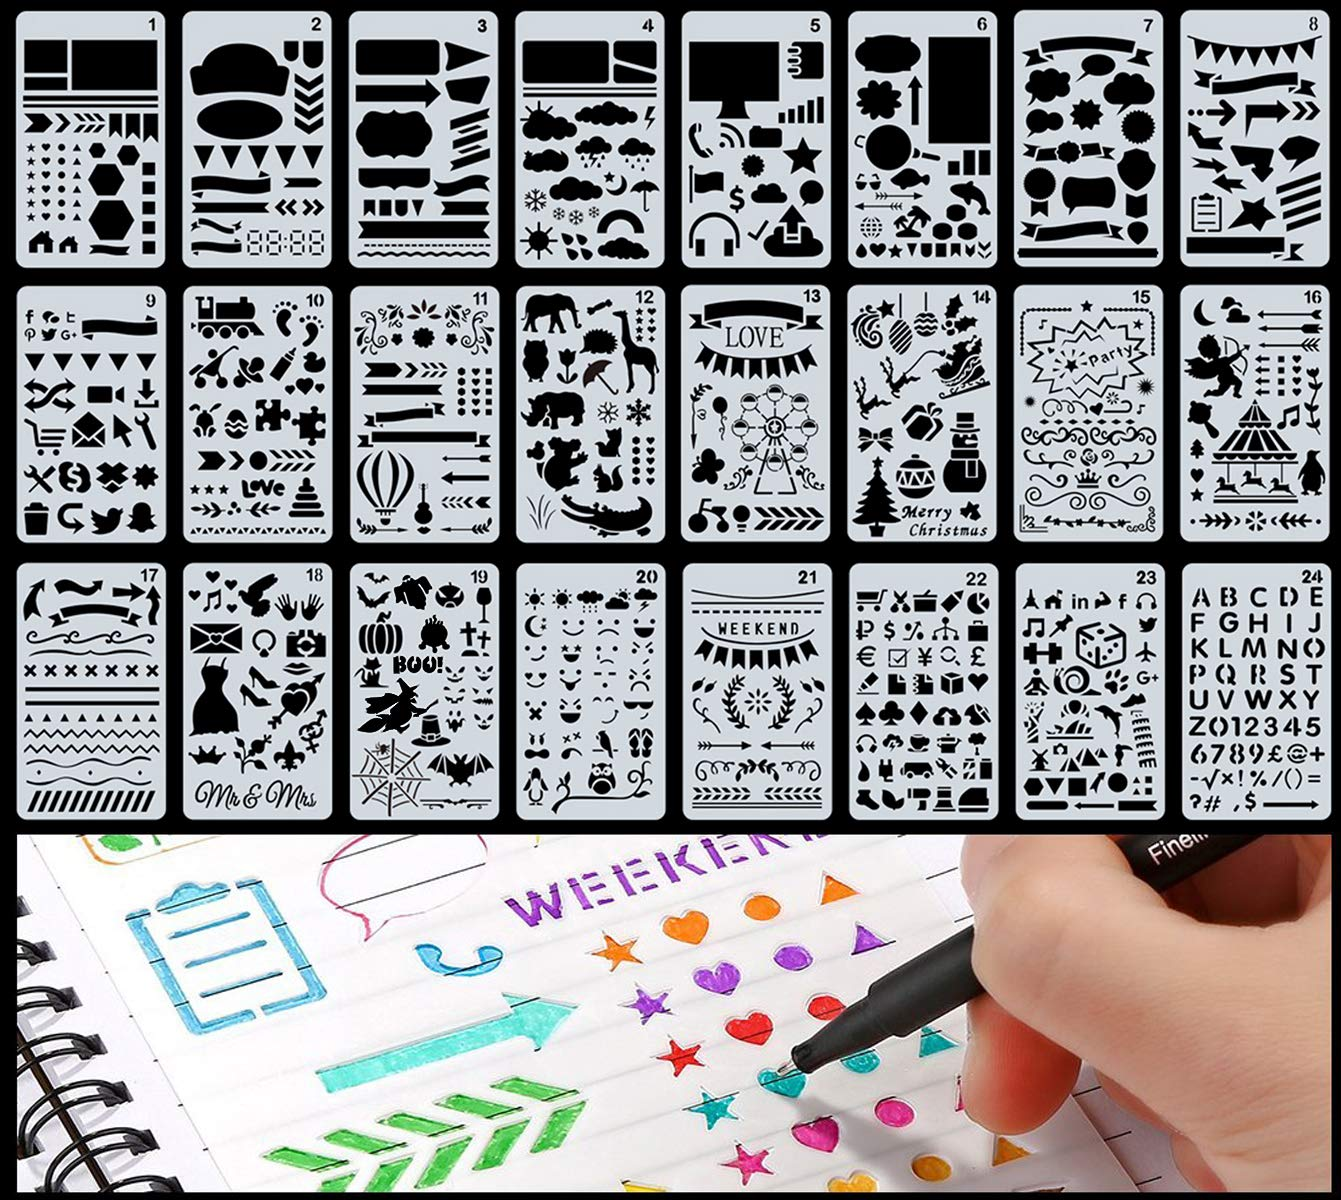 This stencil set is great for more then just scrapbooking